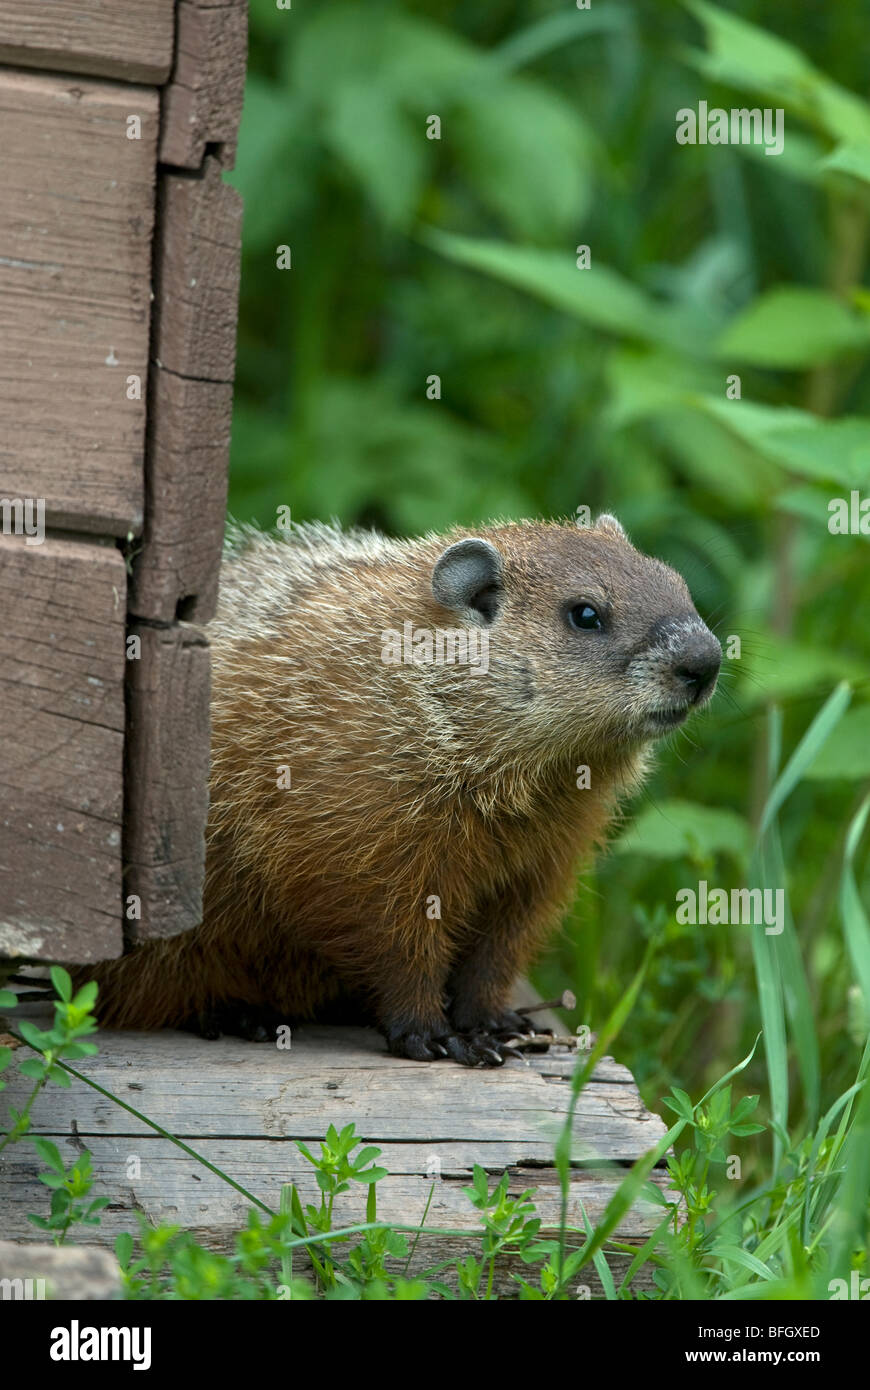 Groundhog (Marmota monax) next to outdoor building, Ontario, Canada - Stock Image